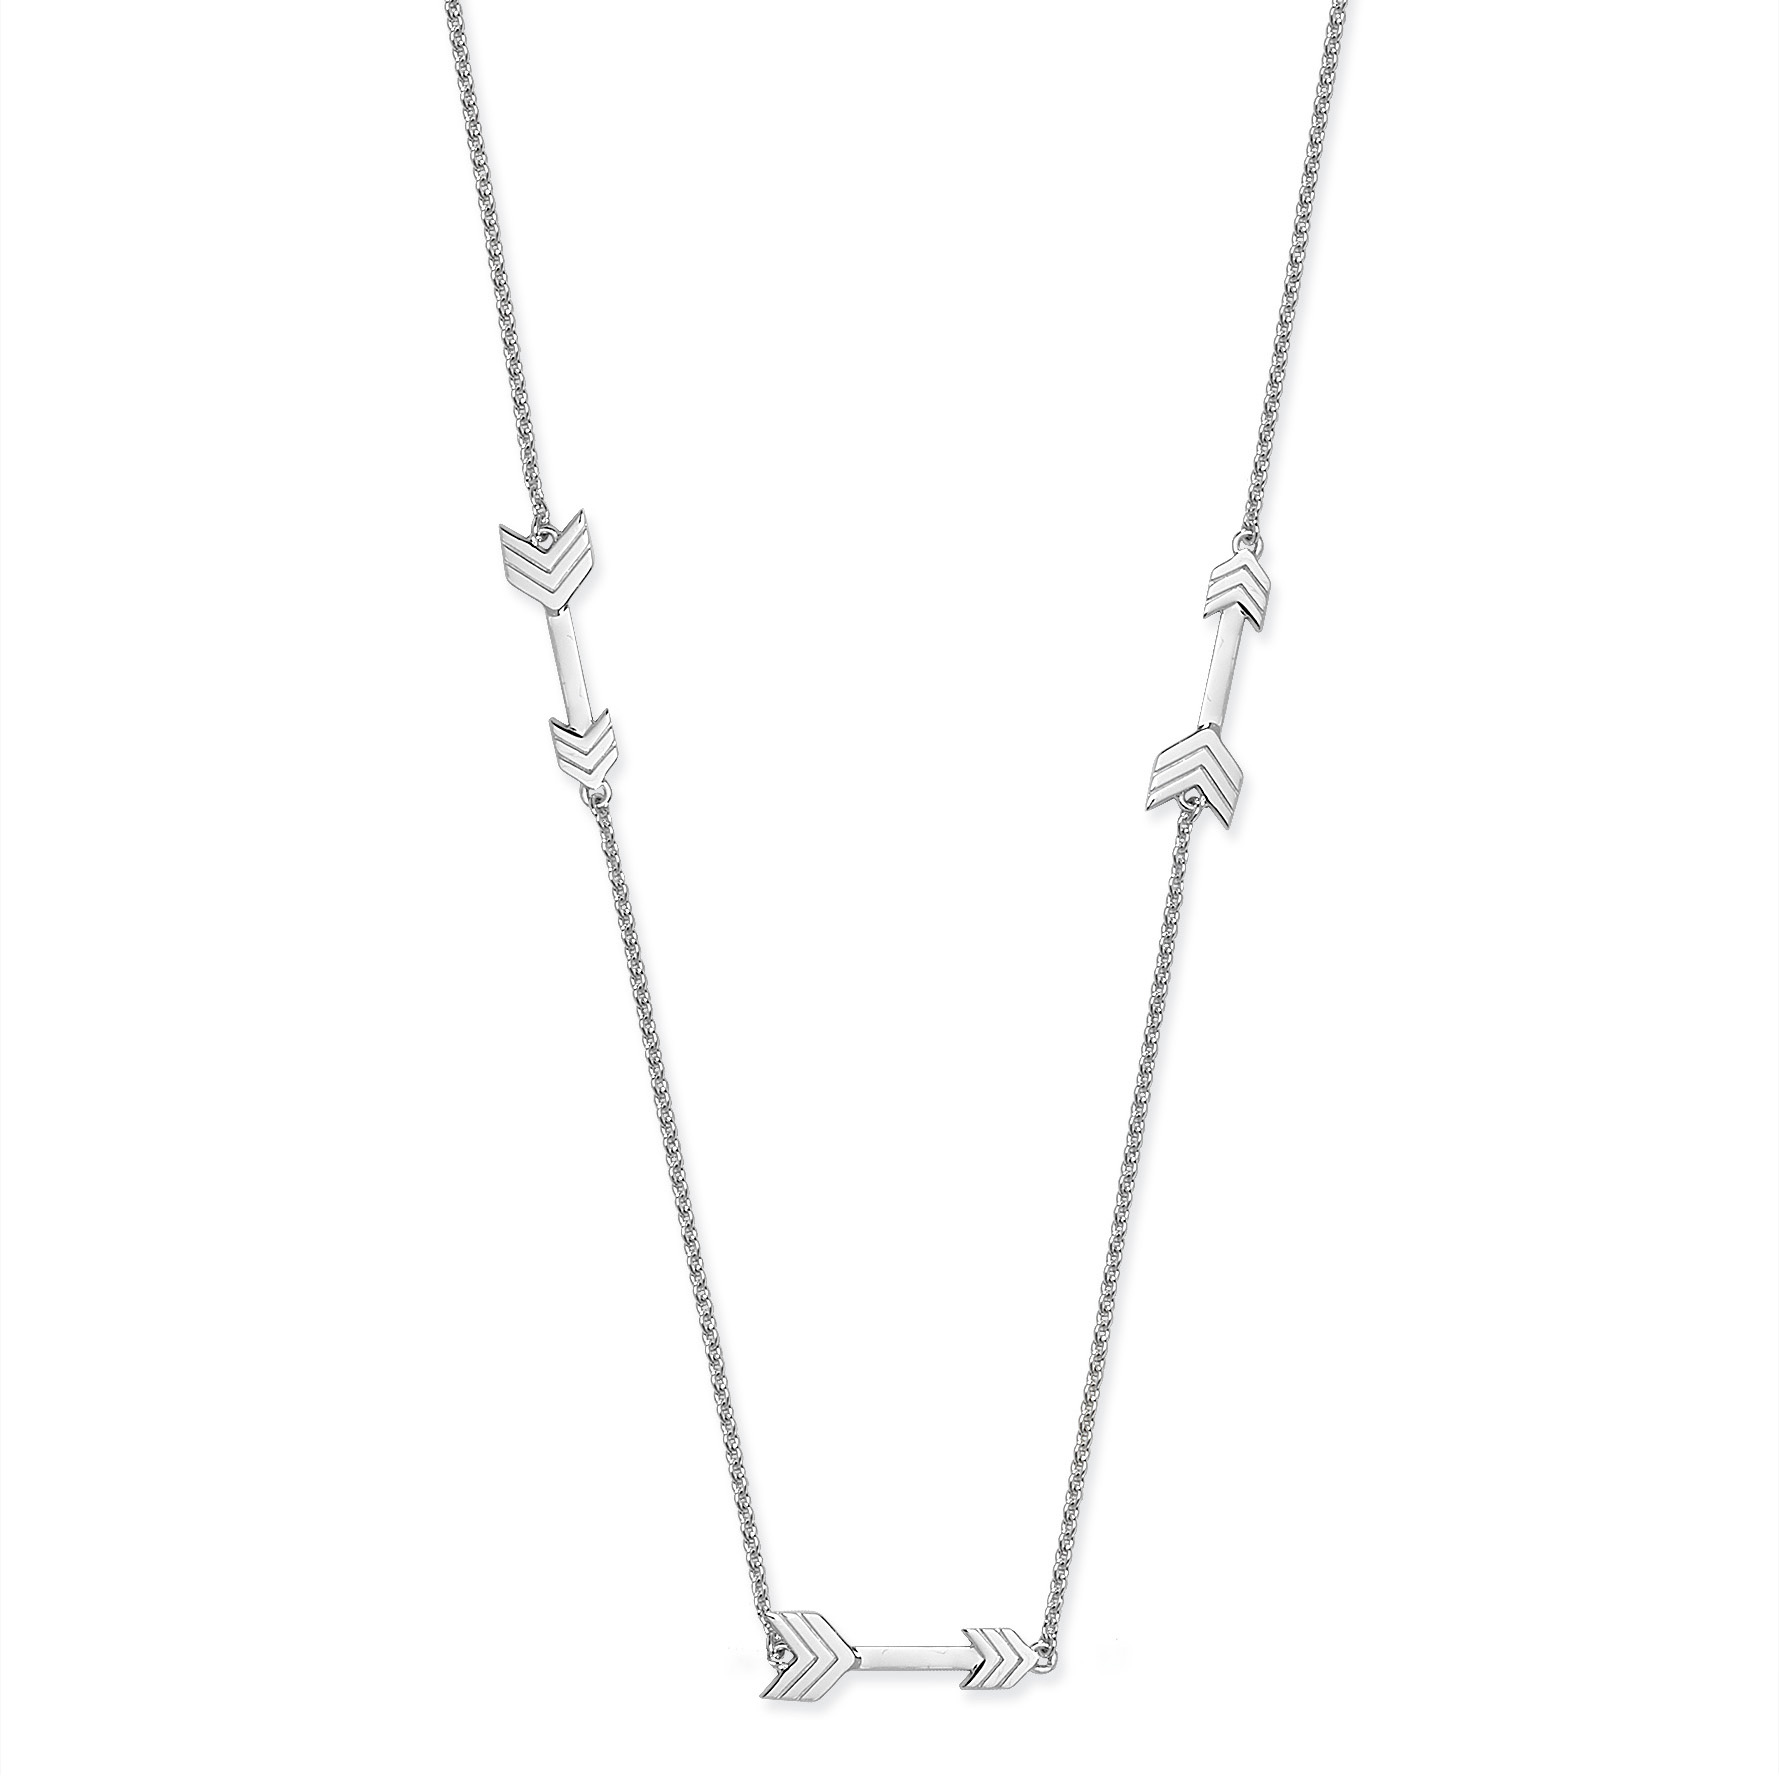 Lucy Q Long Arrow Necklace